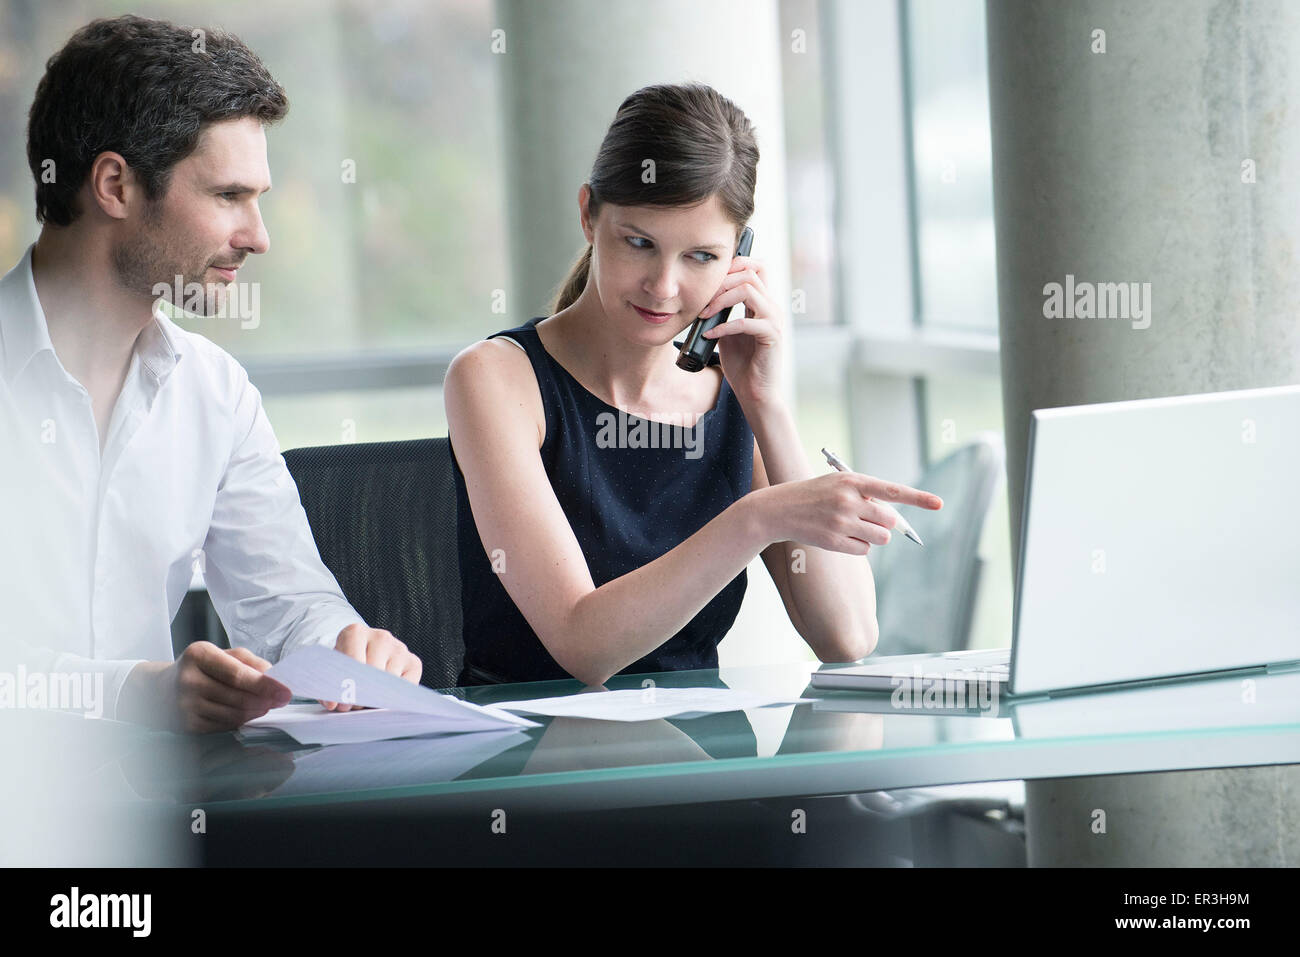 Businesswoman directing colleague's attention to computer screen - Stock Image